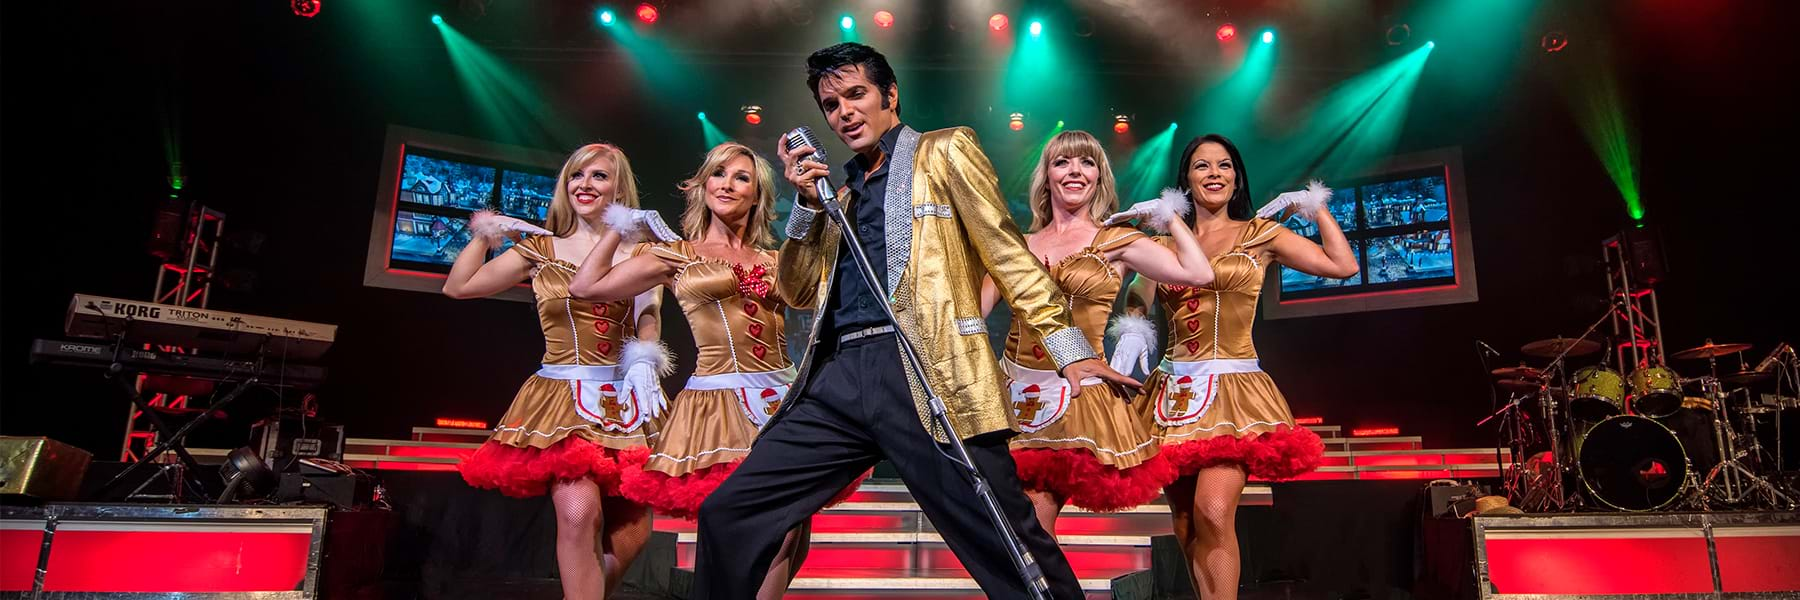 Legends in Concert - Christmas Show in Branson, Missouri